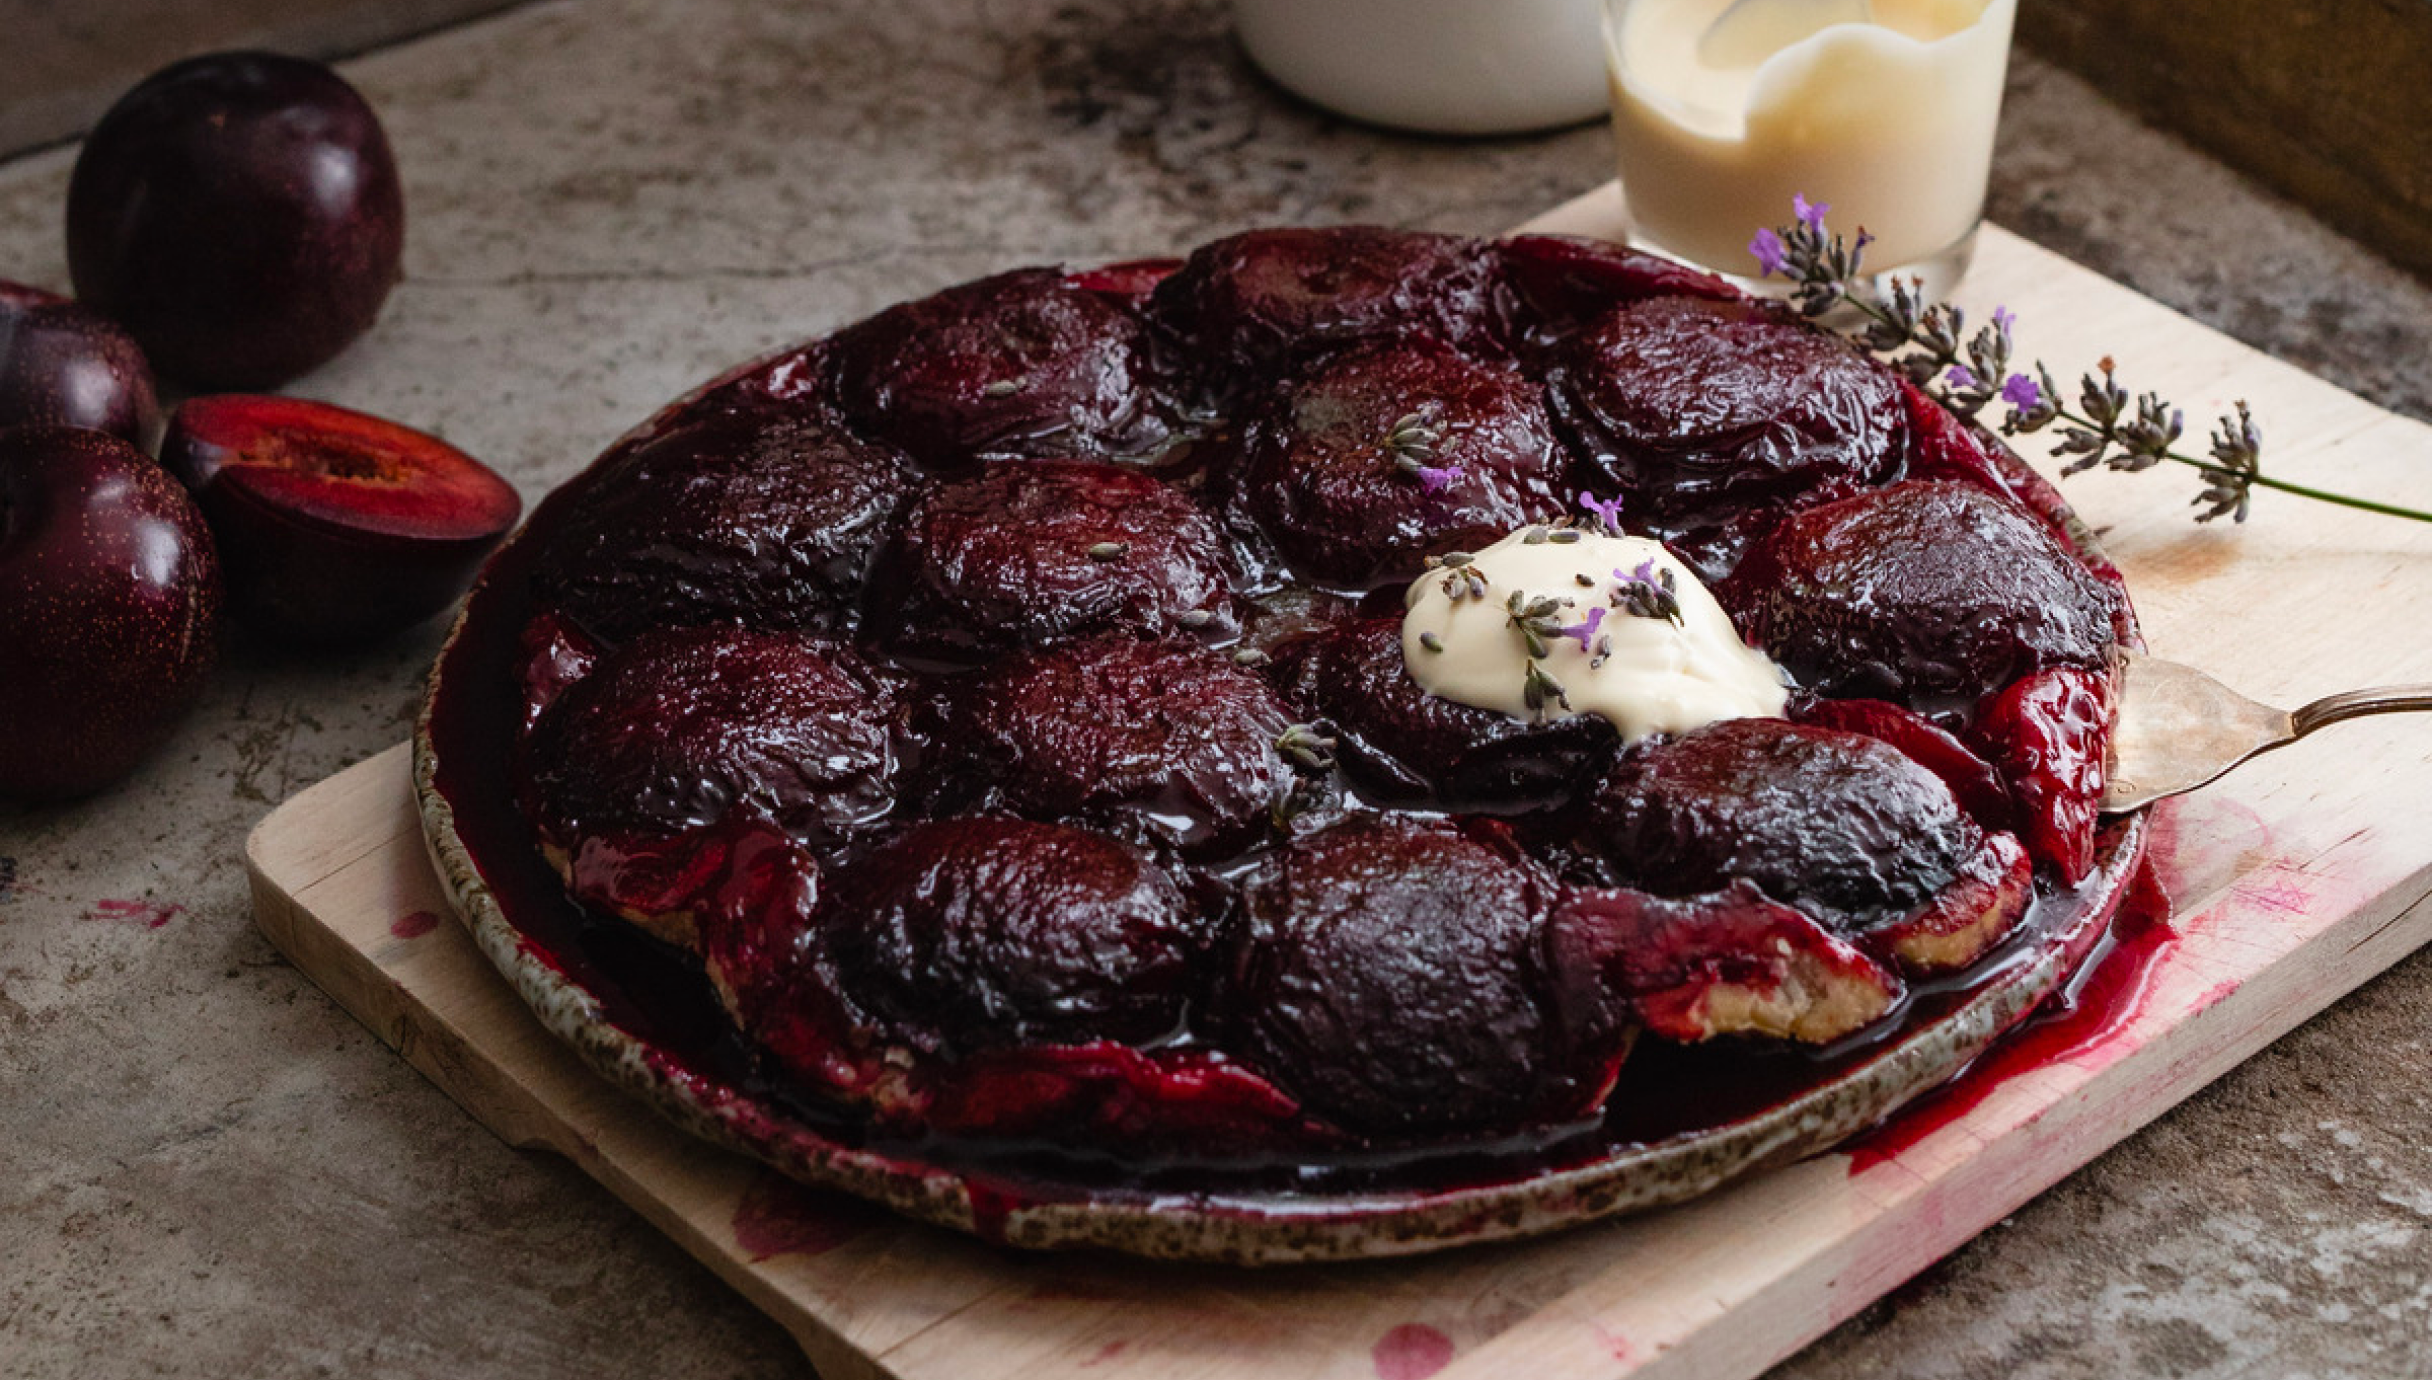 Queen Garnet plum tarte tatin ready to be served